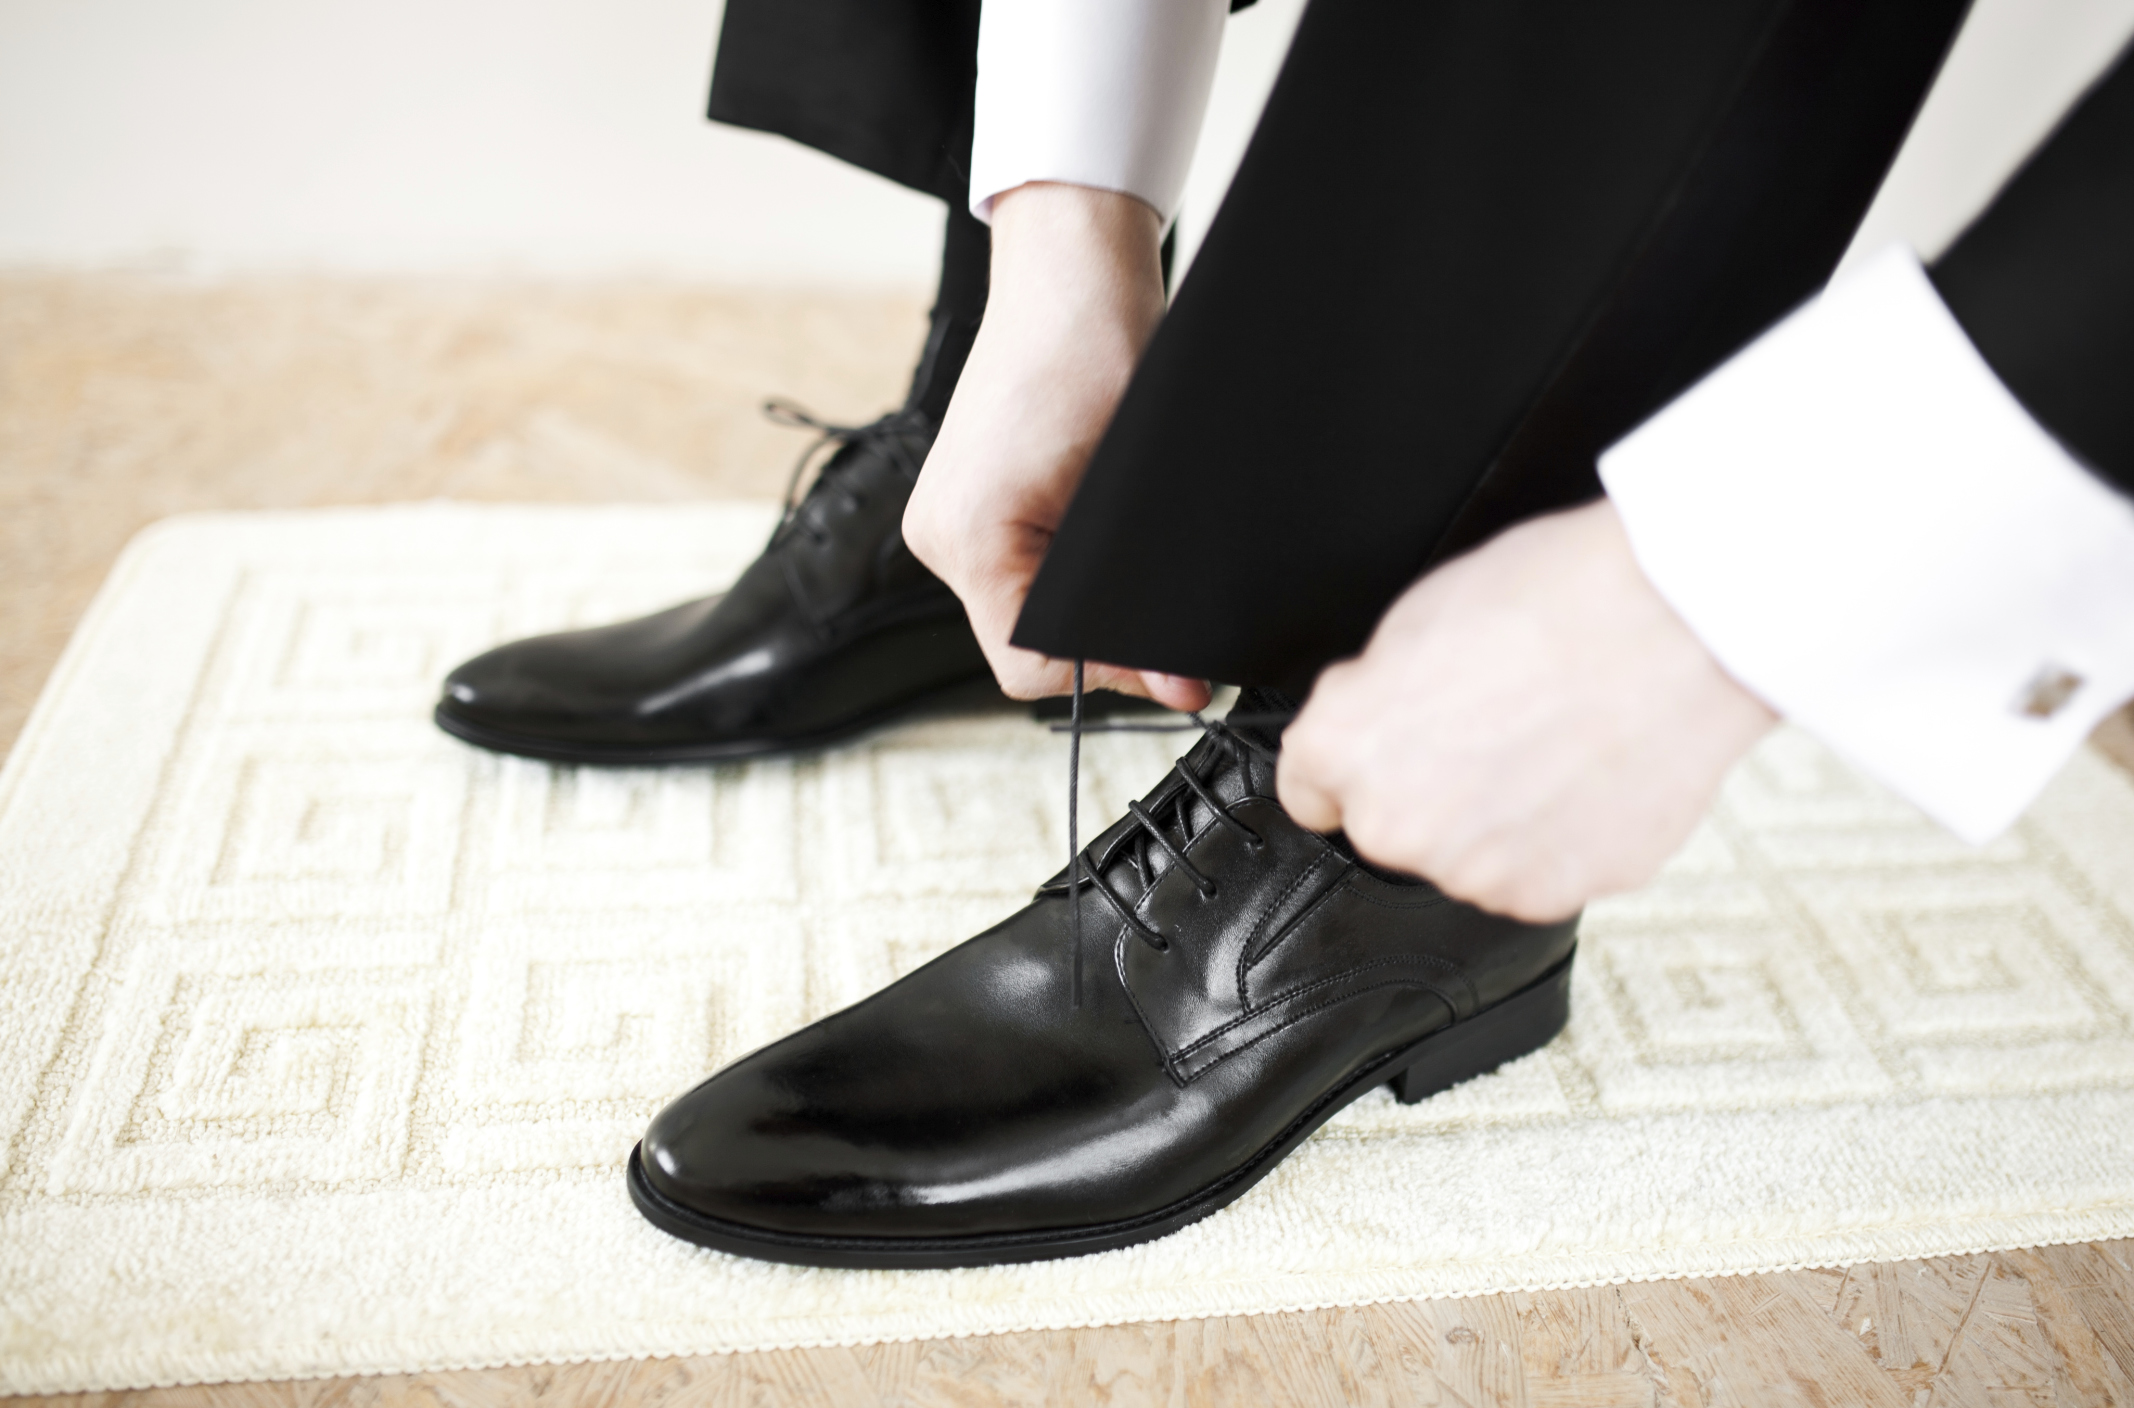 Mens wedding shoes - Articles - Easy Weddings